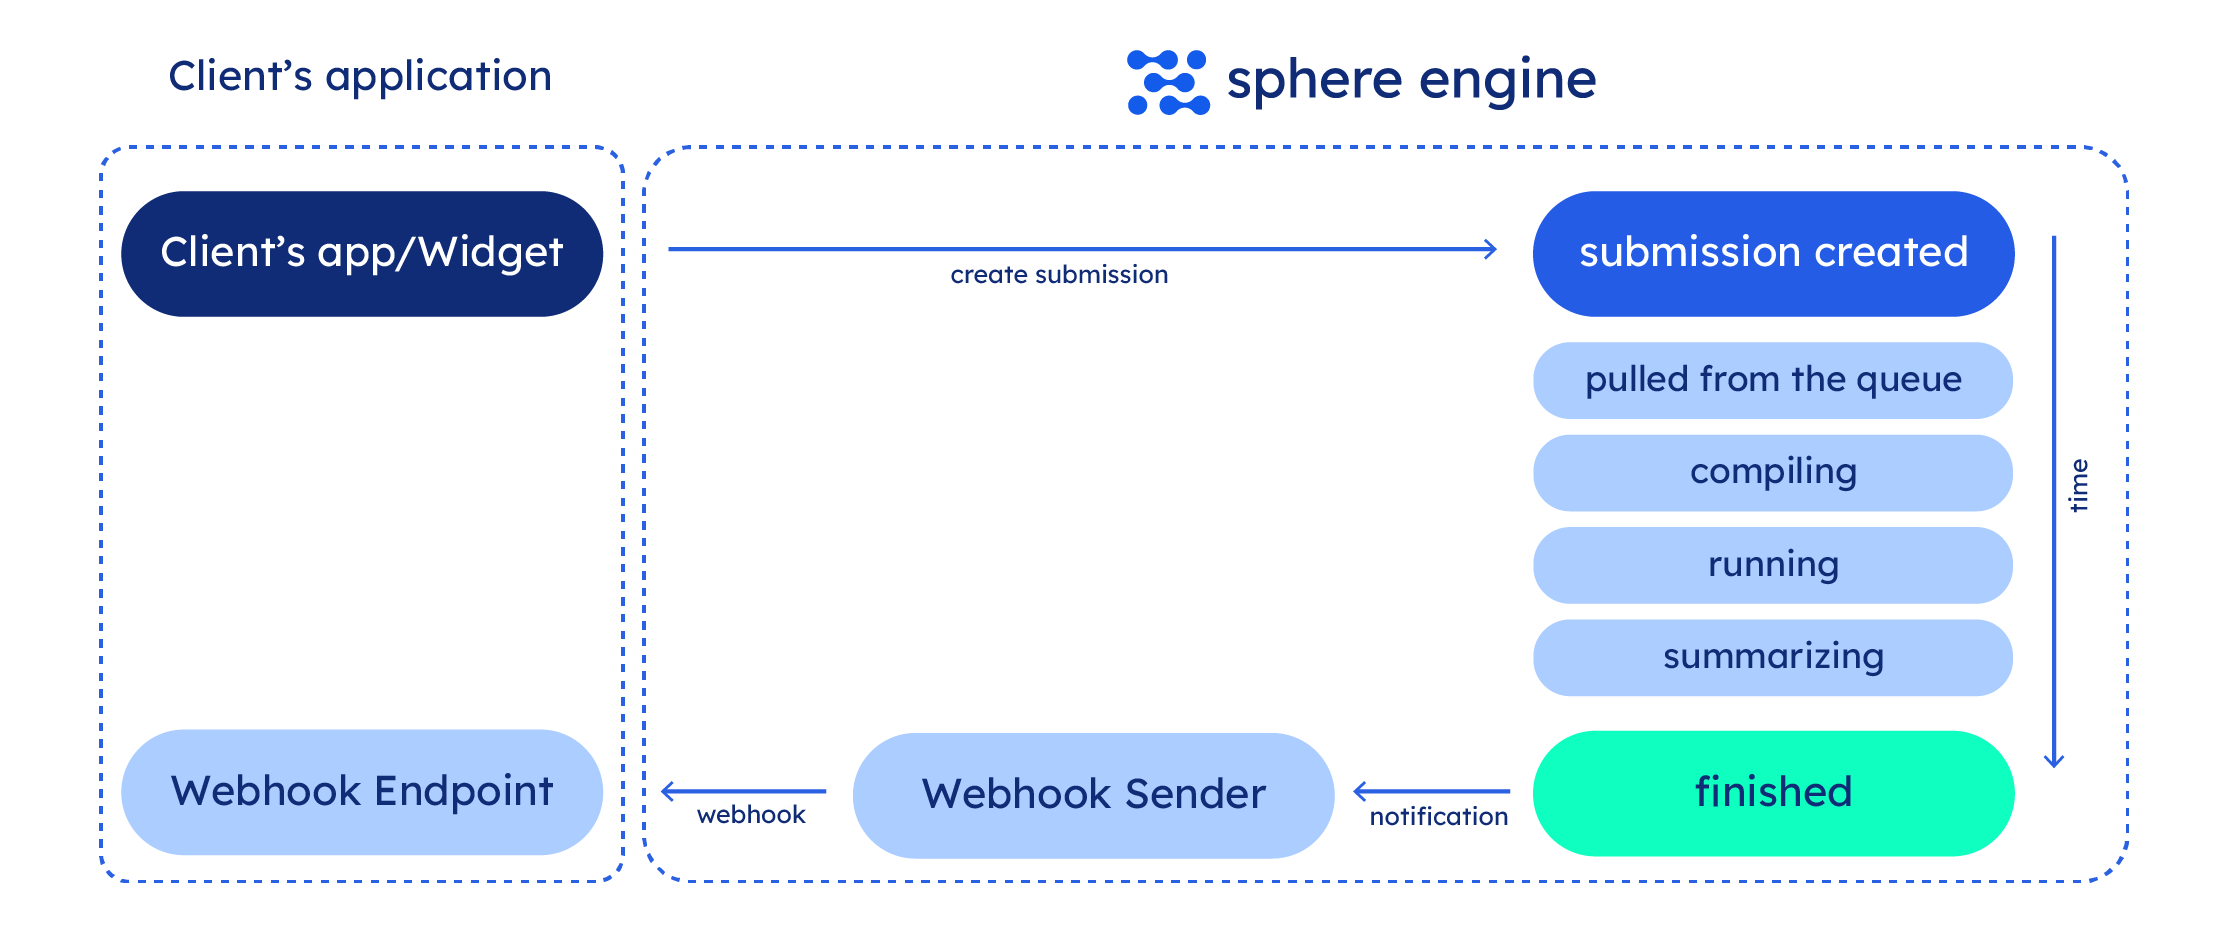 Sphere Engine webhooks diagram""